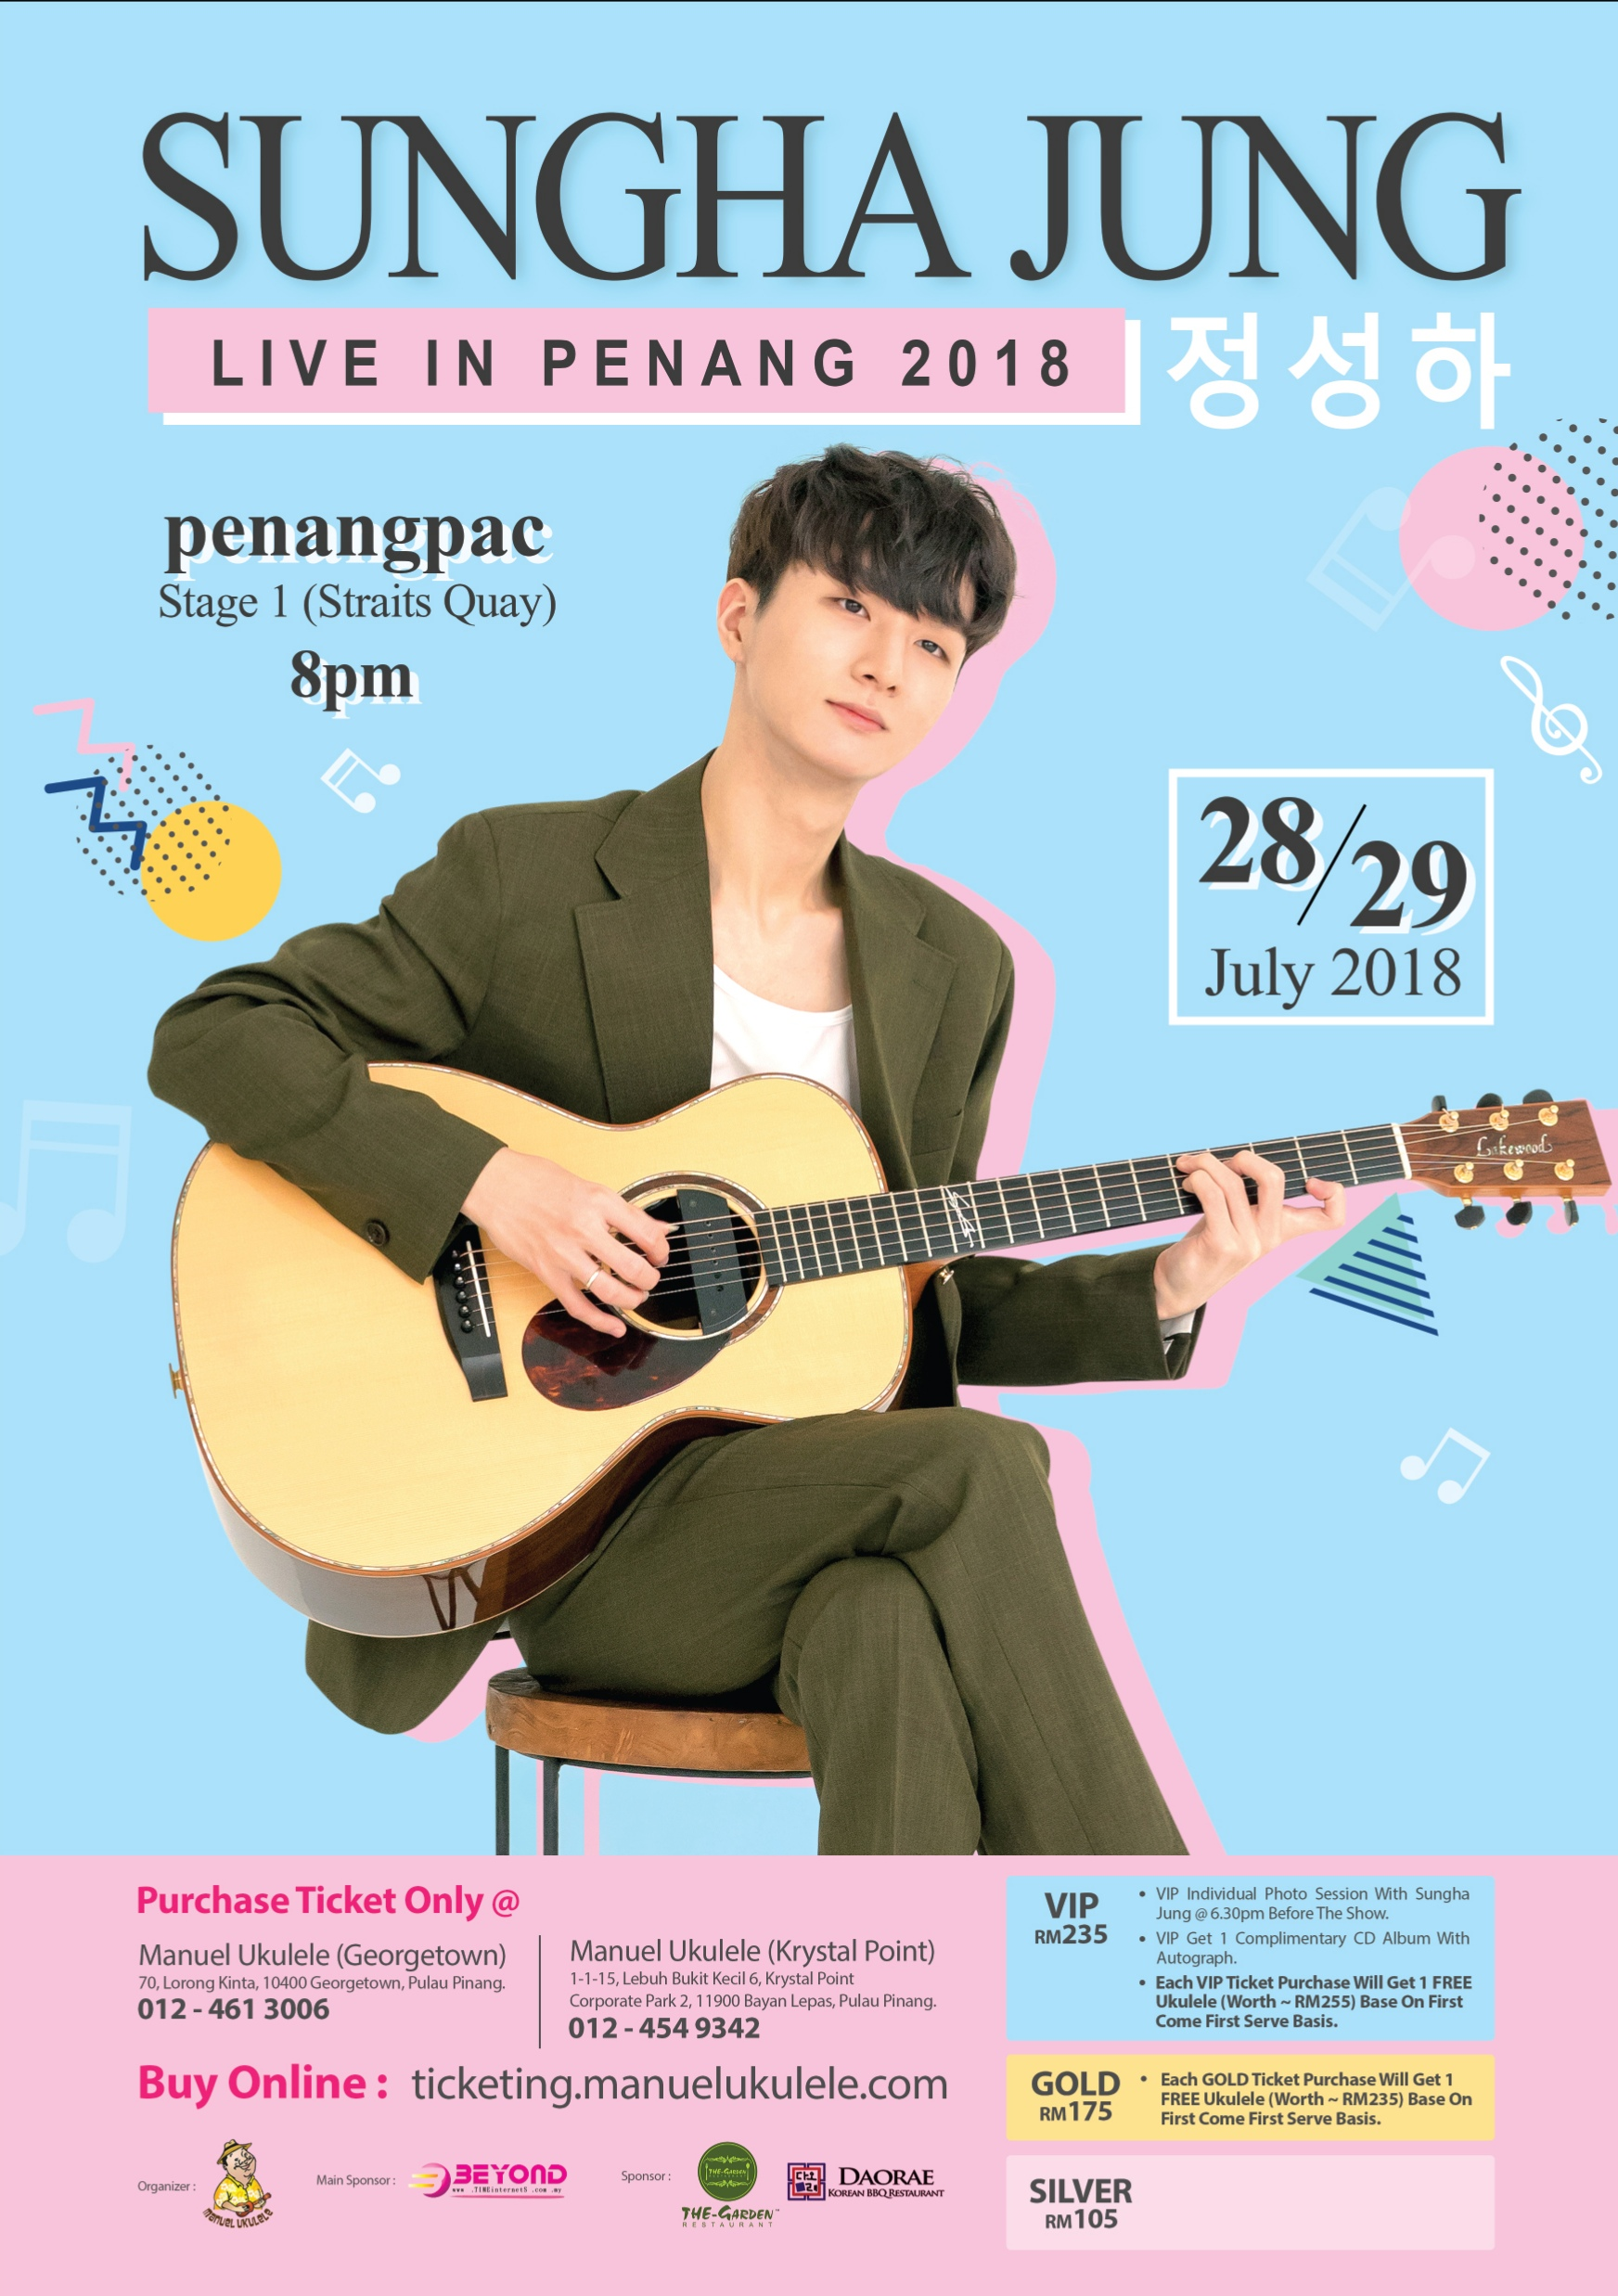 Jung Online 1st Show Sungha Jung Live In Penang 2018 28th July 8pm